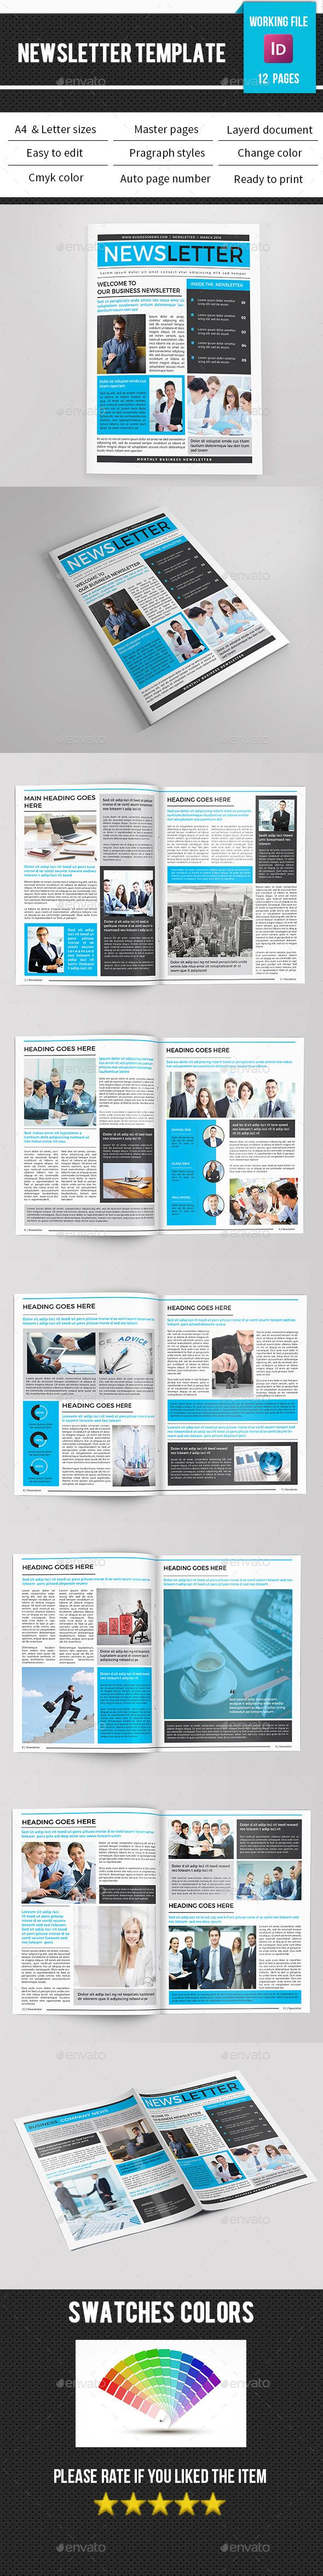 Corporate Newsletter-V10 | Print templates, Newsletter templates and ...